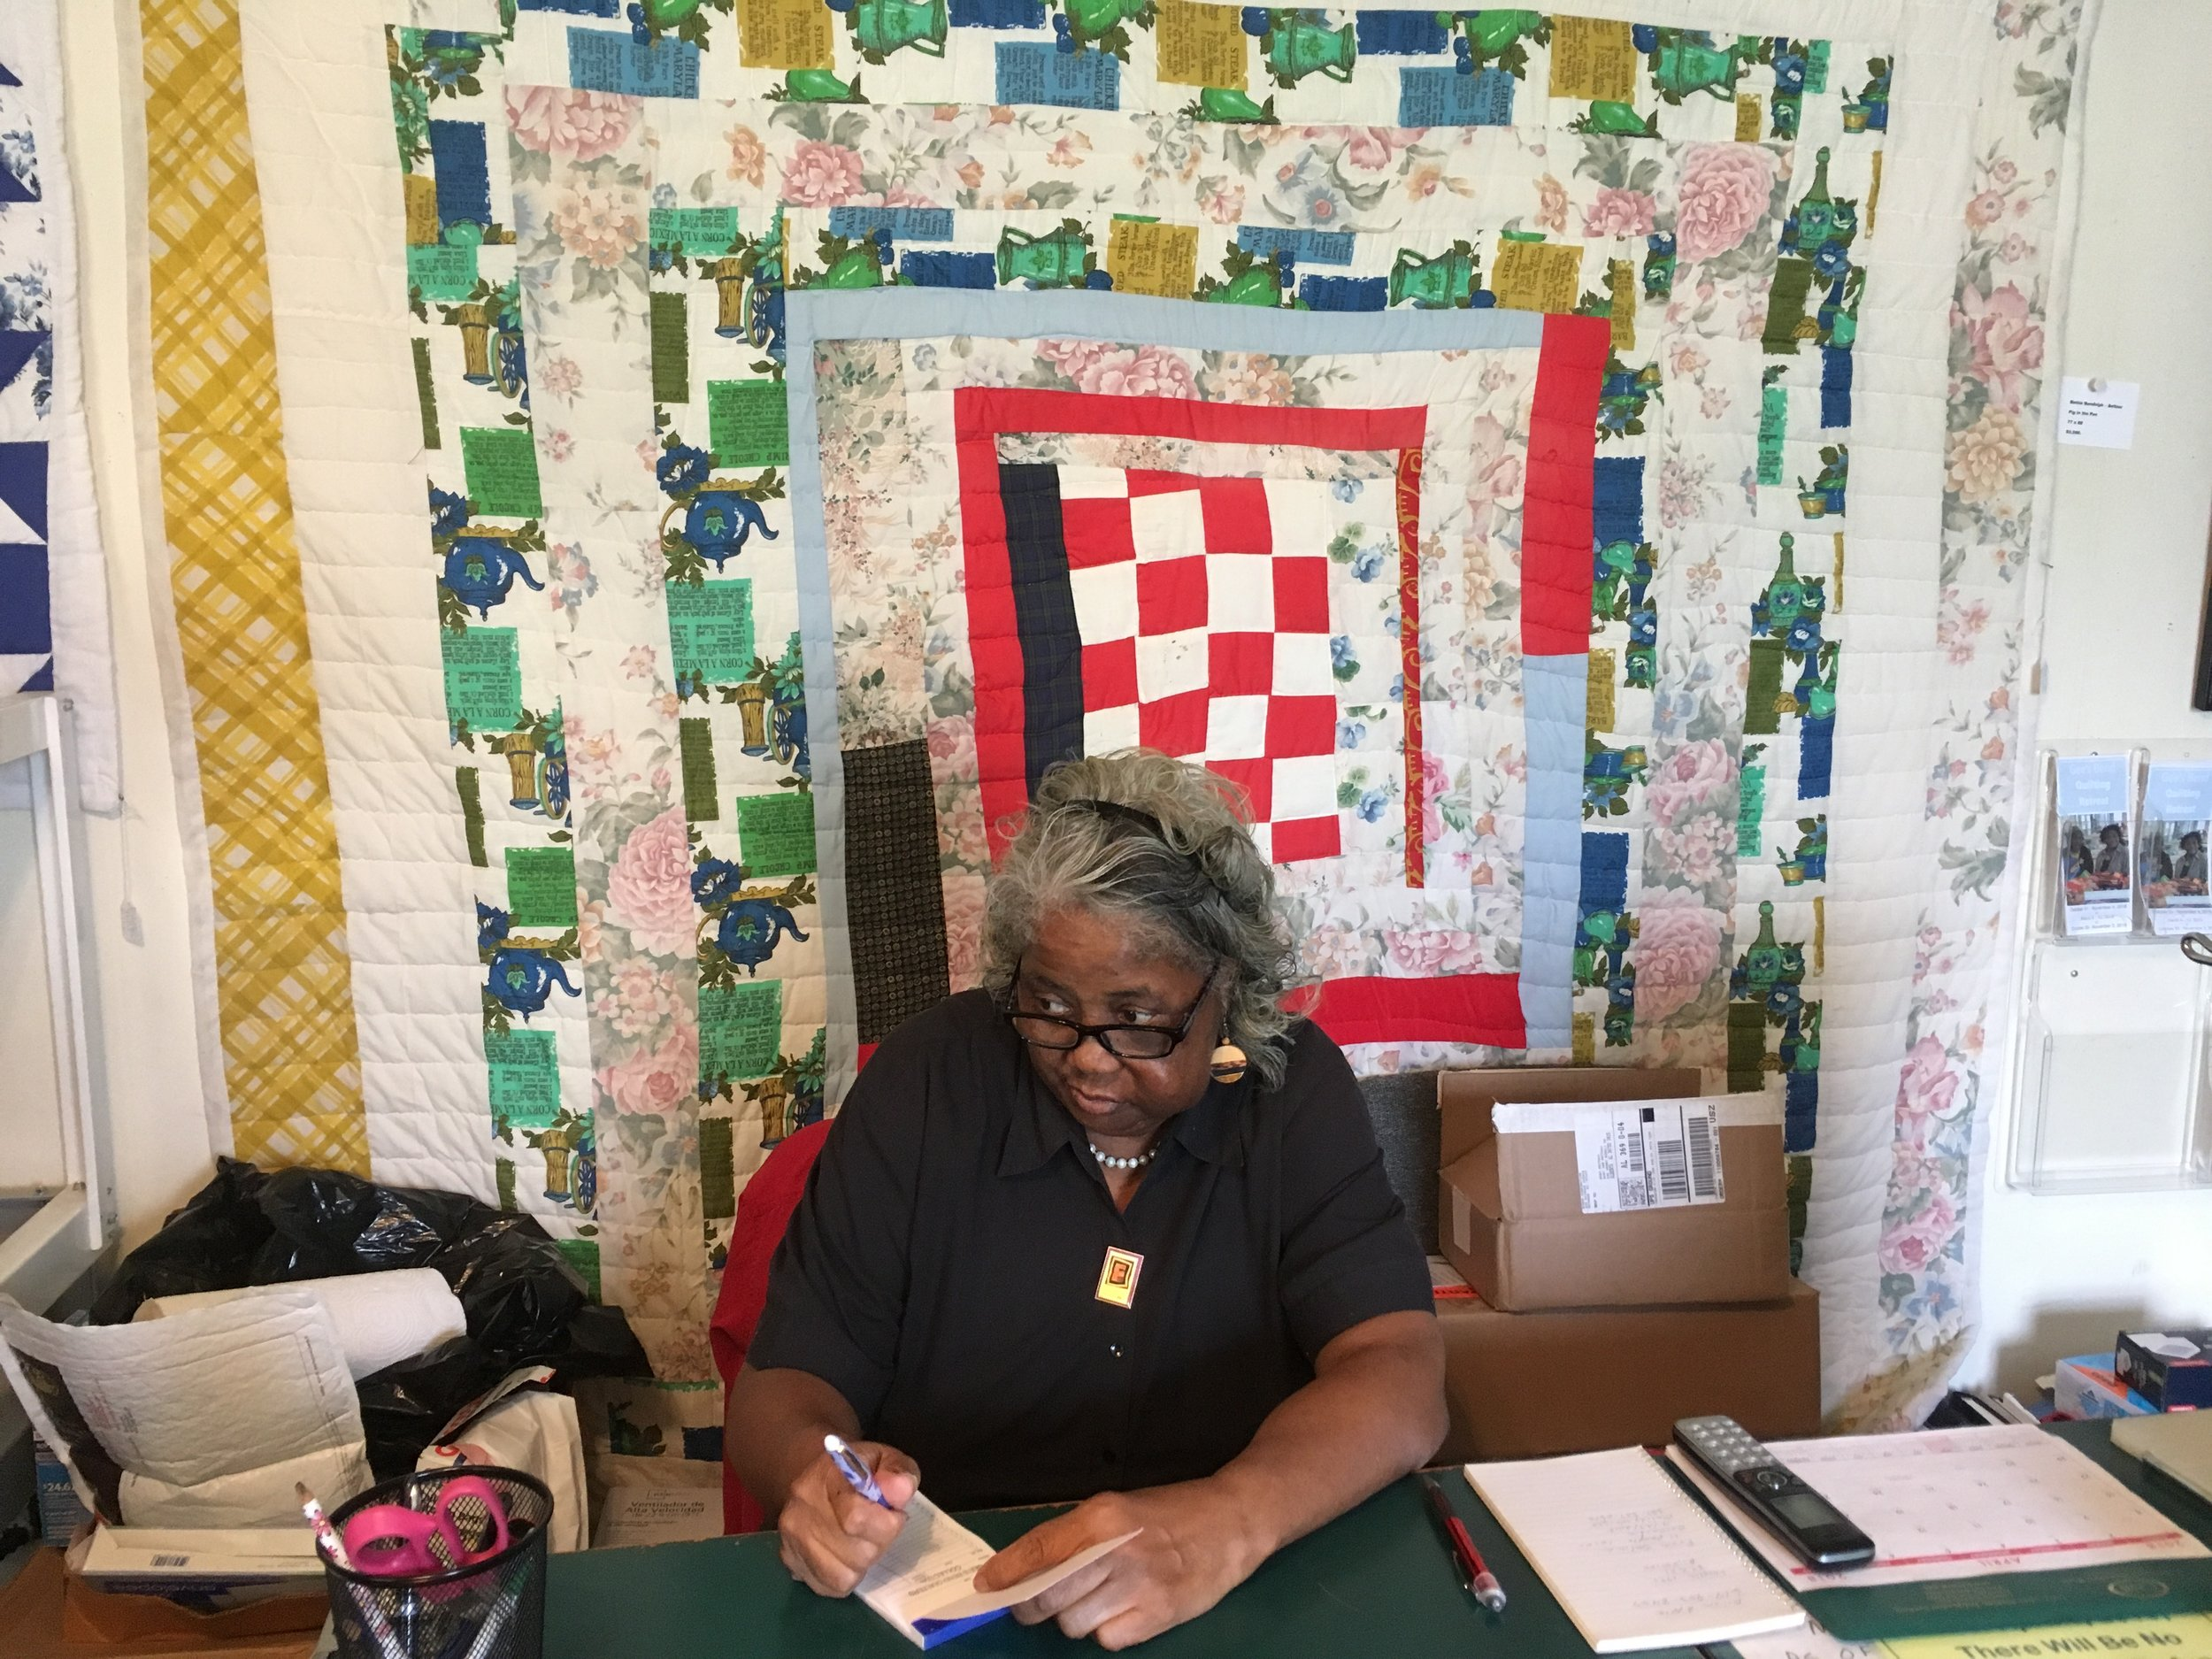 Mary Ann Pettway, Director of the Gee's Bend Quilt Collective. Sitting in front of a quilt made by Bettie Bendolph-Seltzer.